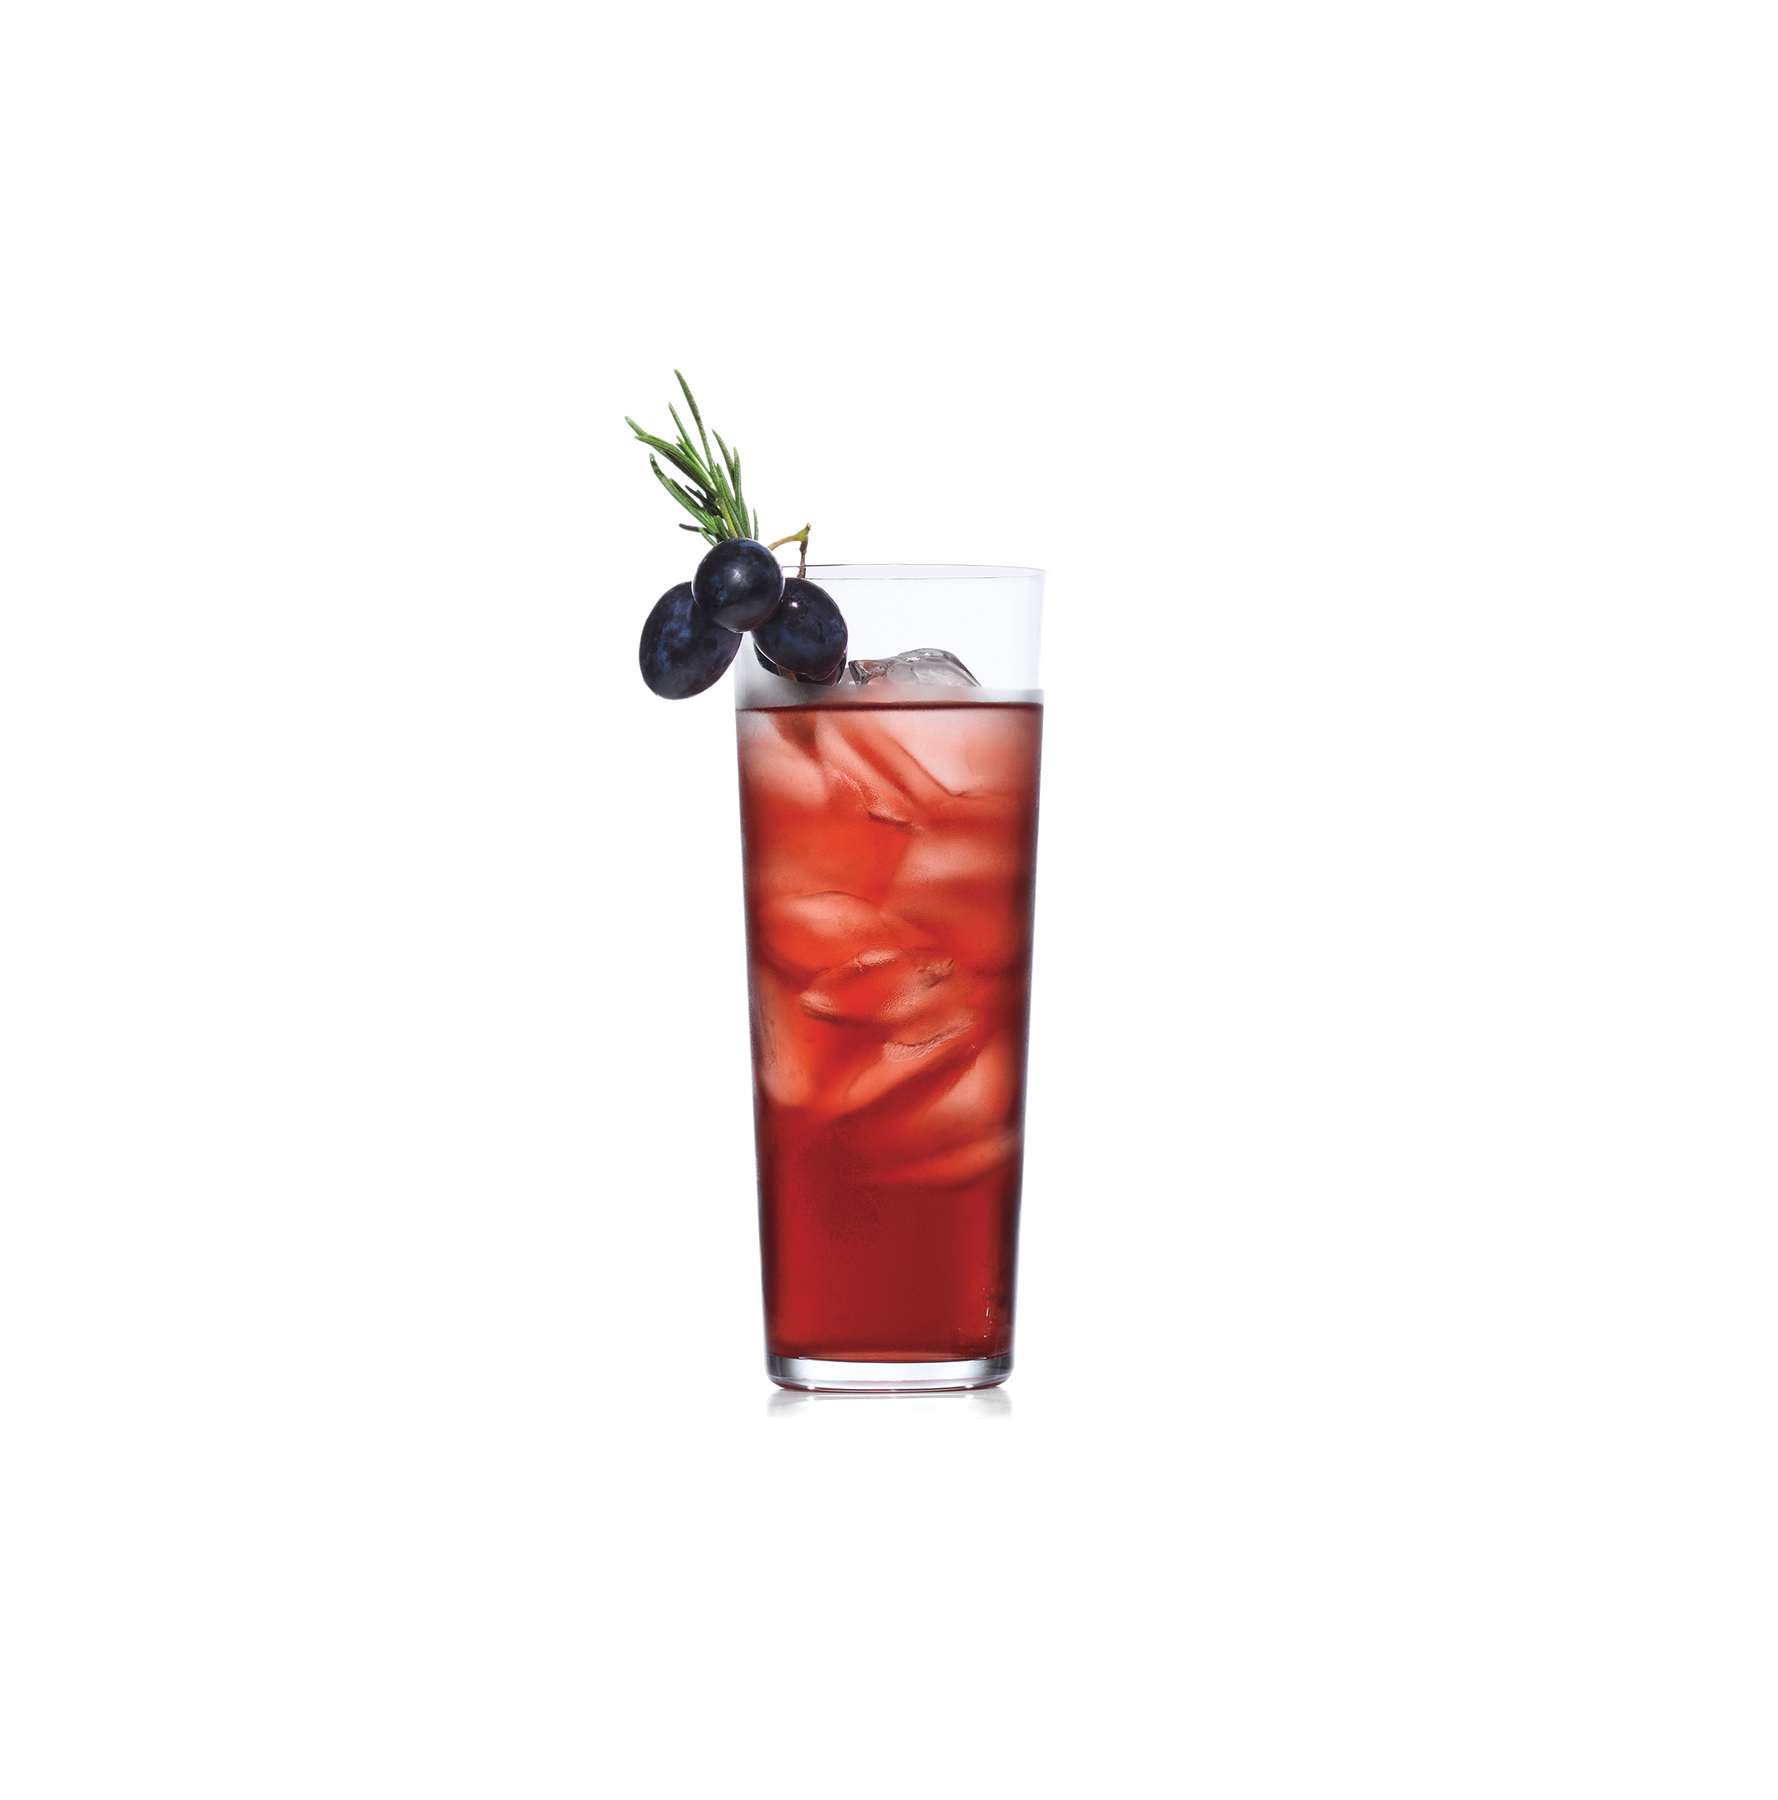 Rosemary, Grape, and Gin Cocktails